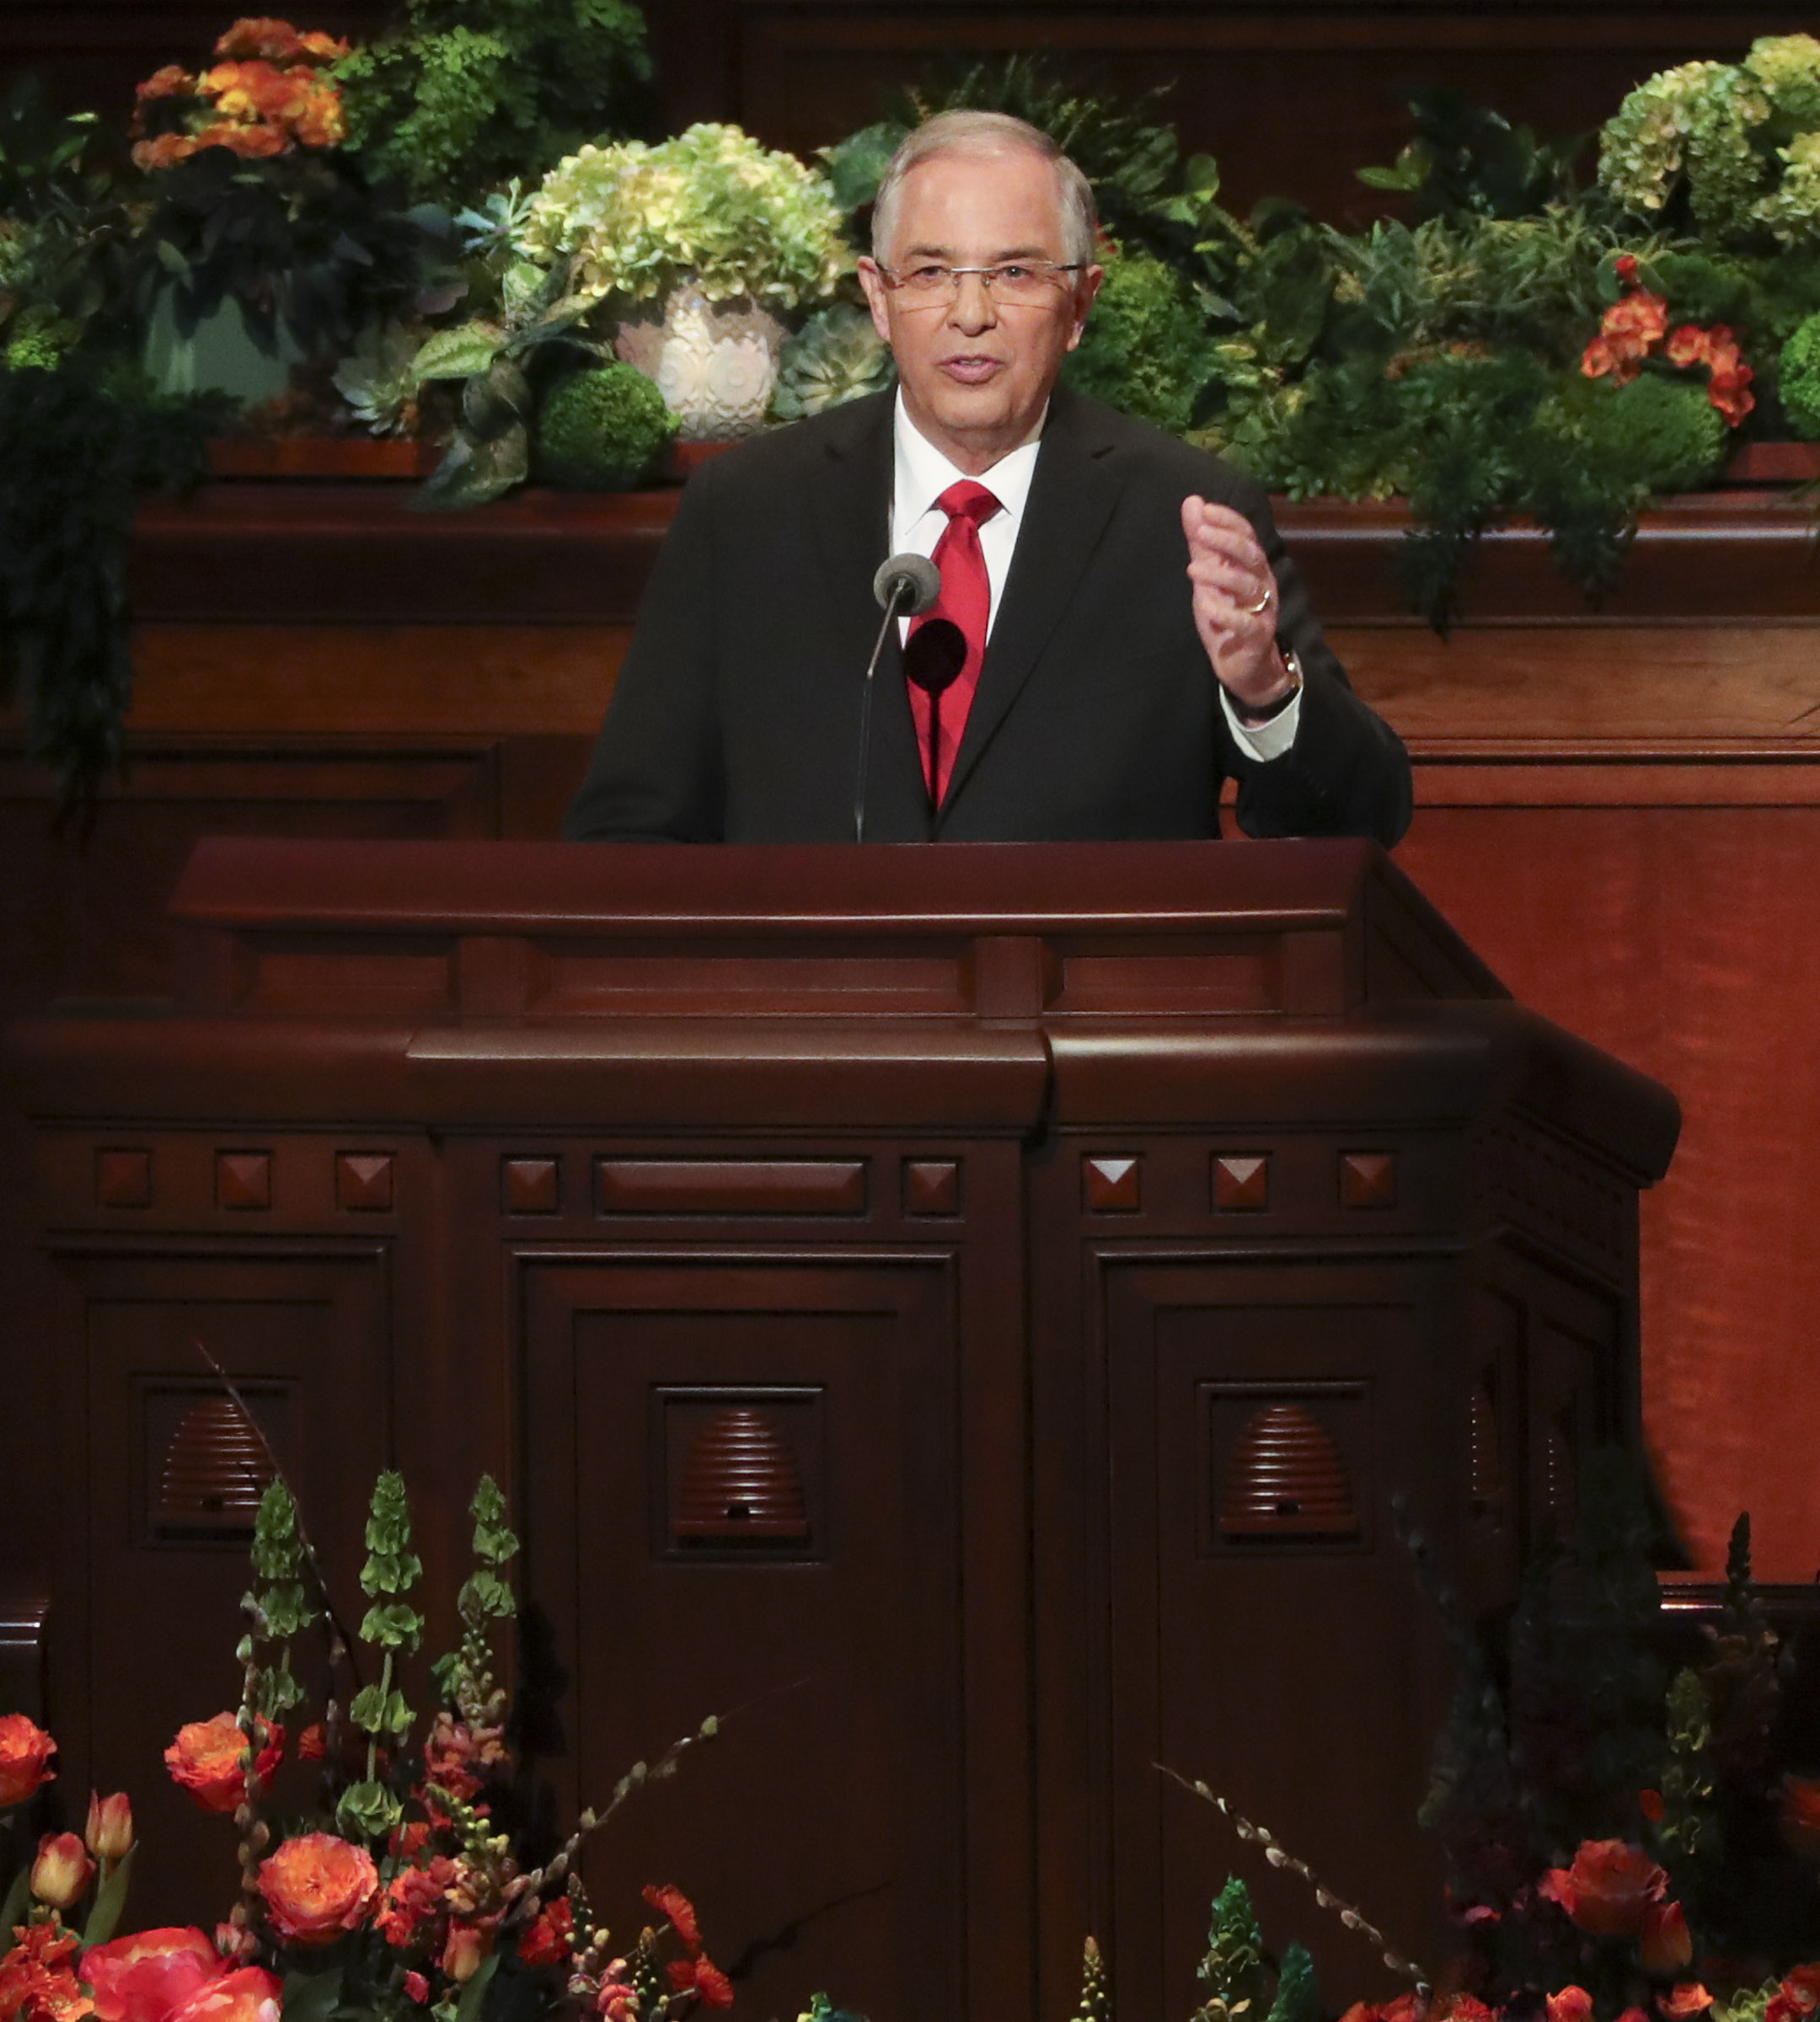 Elder Neil L. Andersen of the Quorum of the Twelve Apostles, speaks during the afternoon session of the 189th Annual General Conference of The Church of Jesus Christ of Latter-day Saints at the Conference Center in Salt Lake City on Saturday, April 6, 2019.